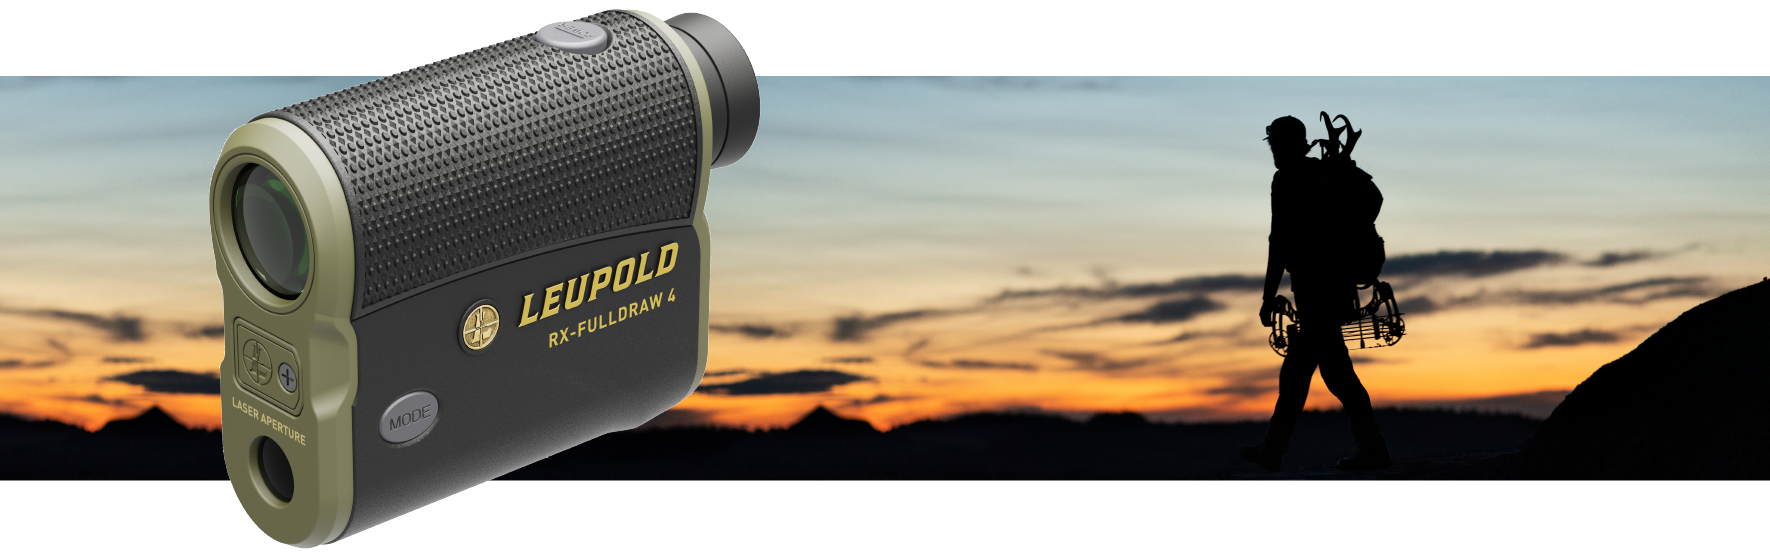 Archer's Delight: Leupold RX-Fulldraw 4 with DNA Laser Rangefinder